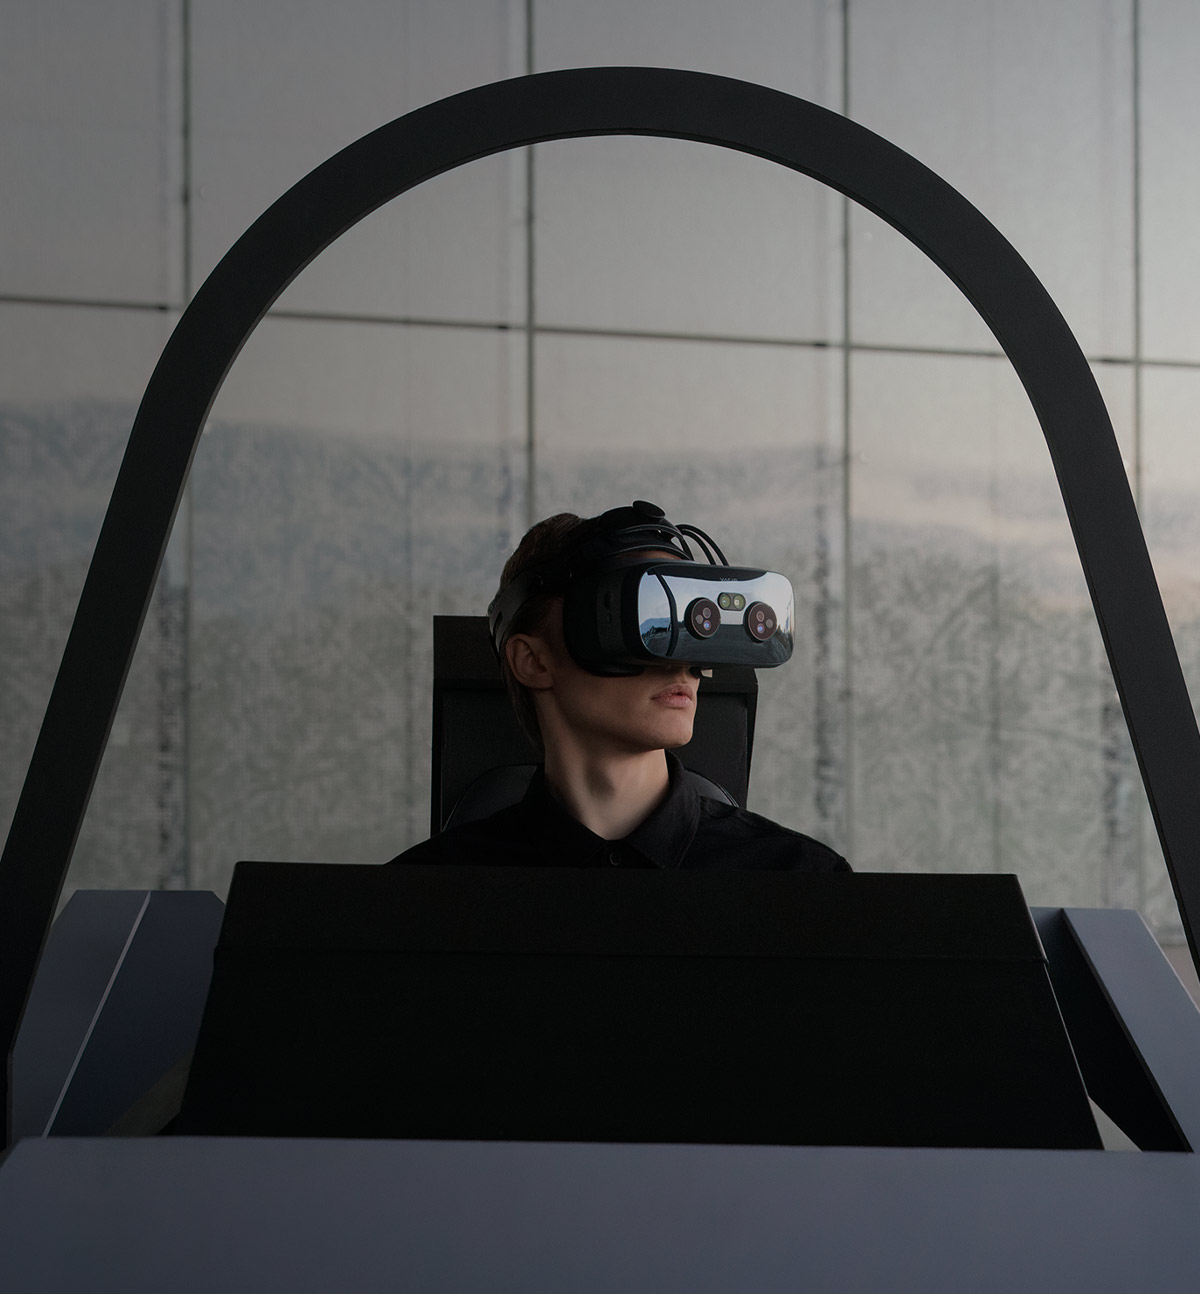 Varjo: Reduce the cost of training with immersive virtual reality (VR), augmented reality (AR) or mixed reality (MR/XR) environments to replace or supplement traditional training solutions.